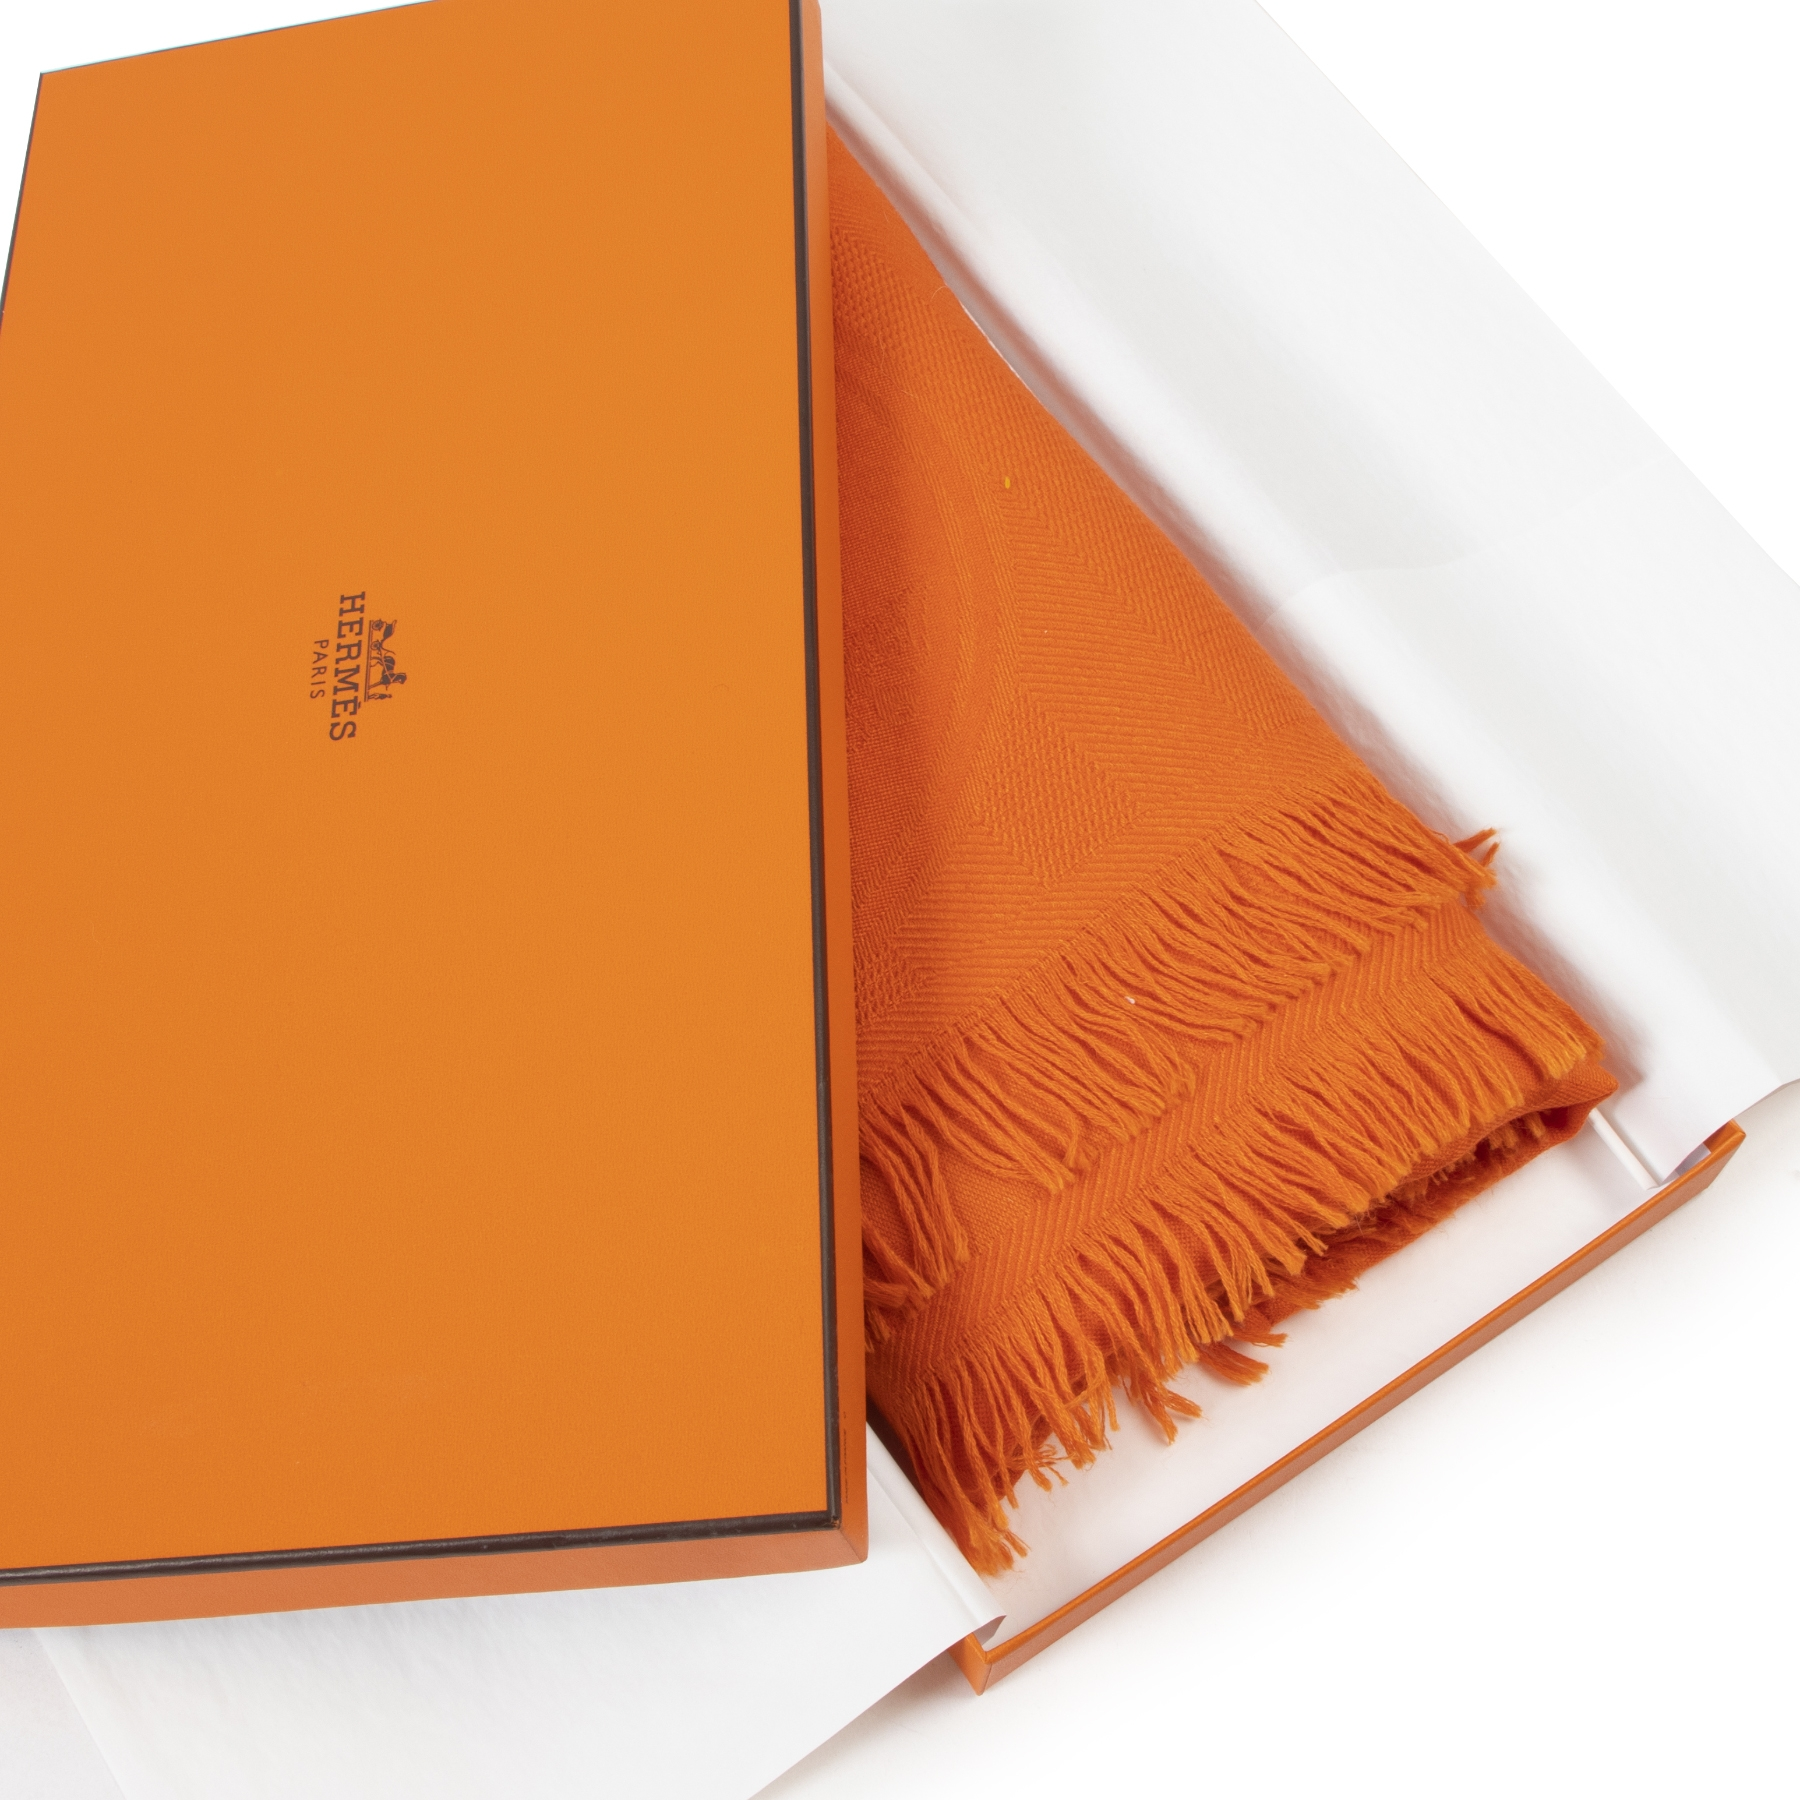 Authentic secondhand Hermès Orange New Libris Cashmere Stole